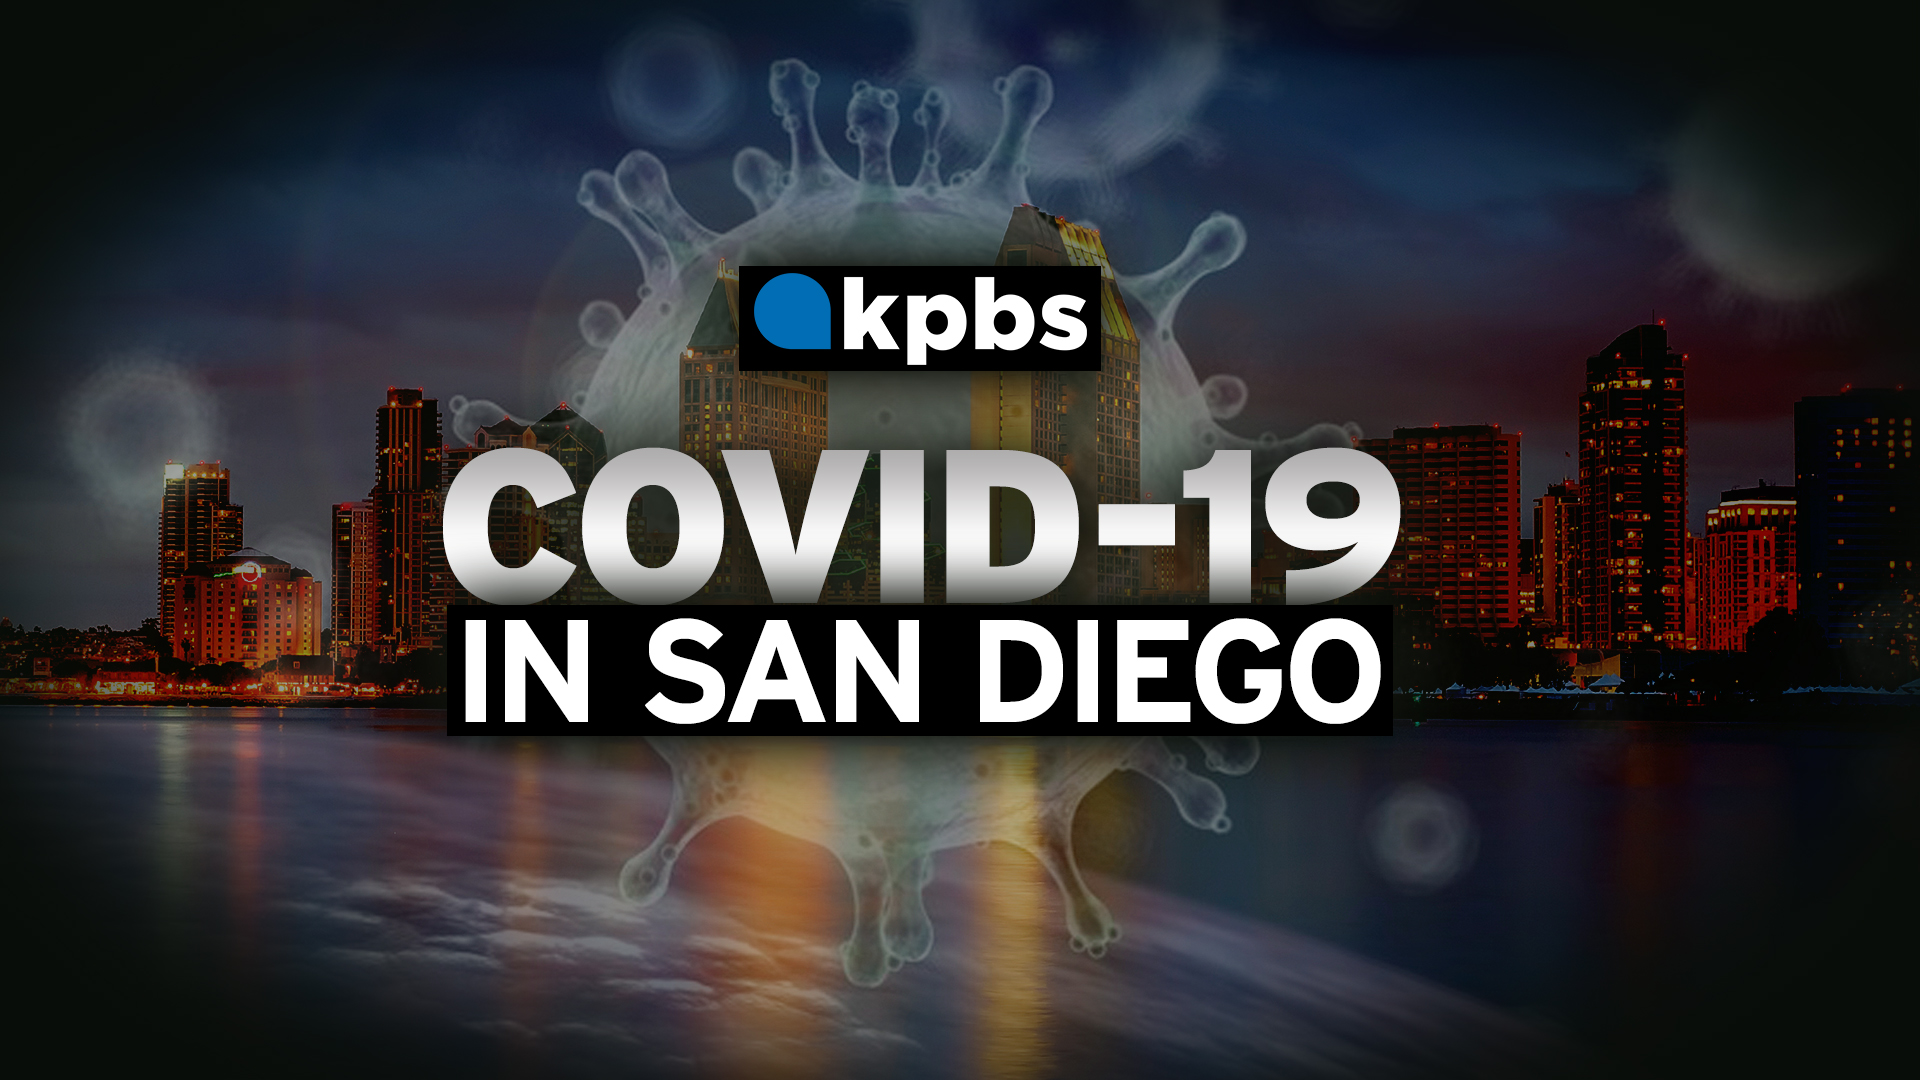 Live Blog: San Diego COVID-19 Cases Doubled Since Sunday